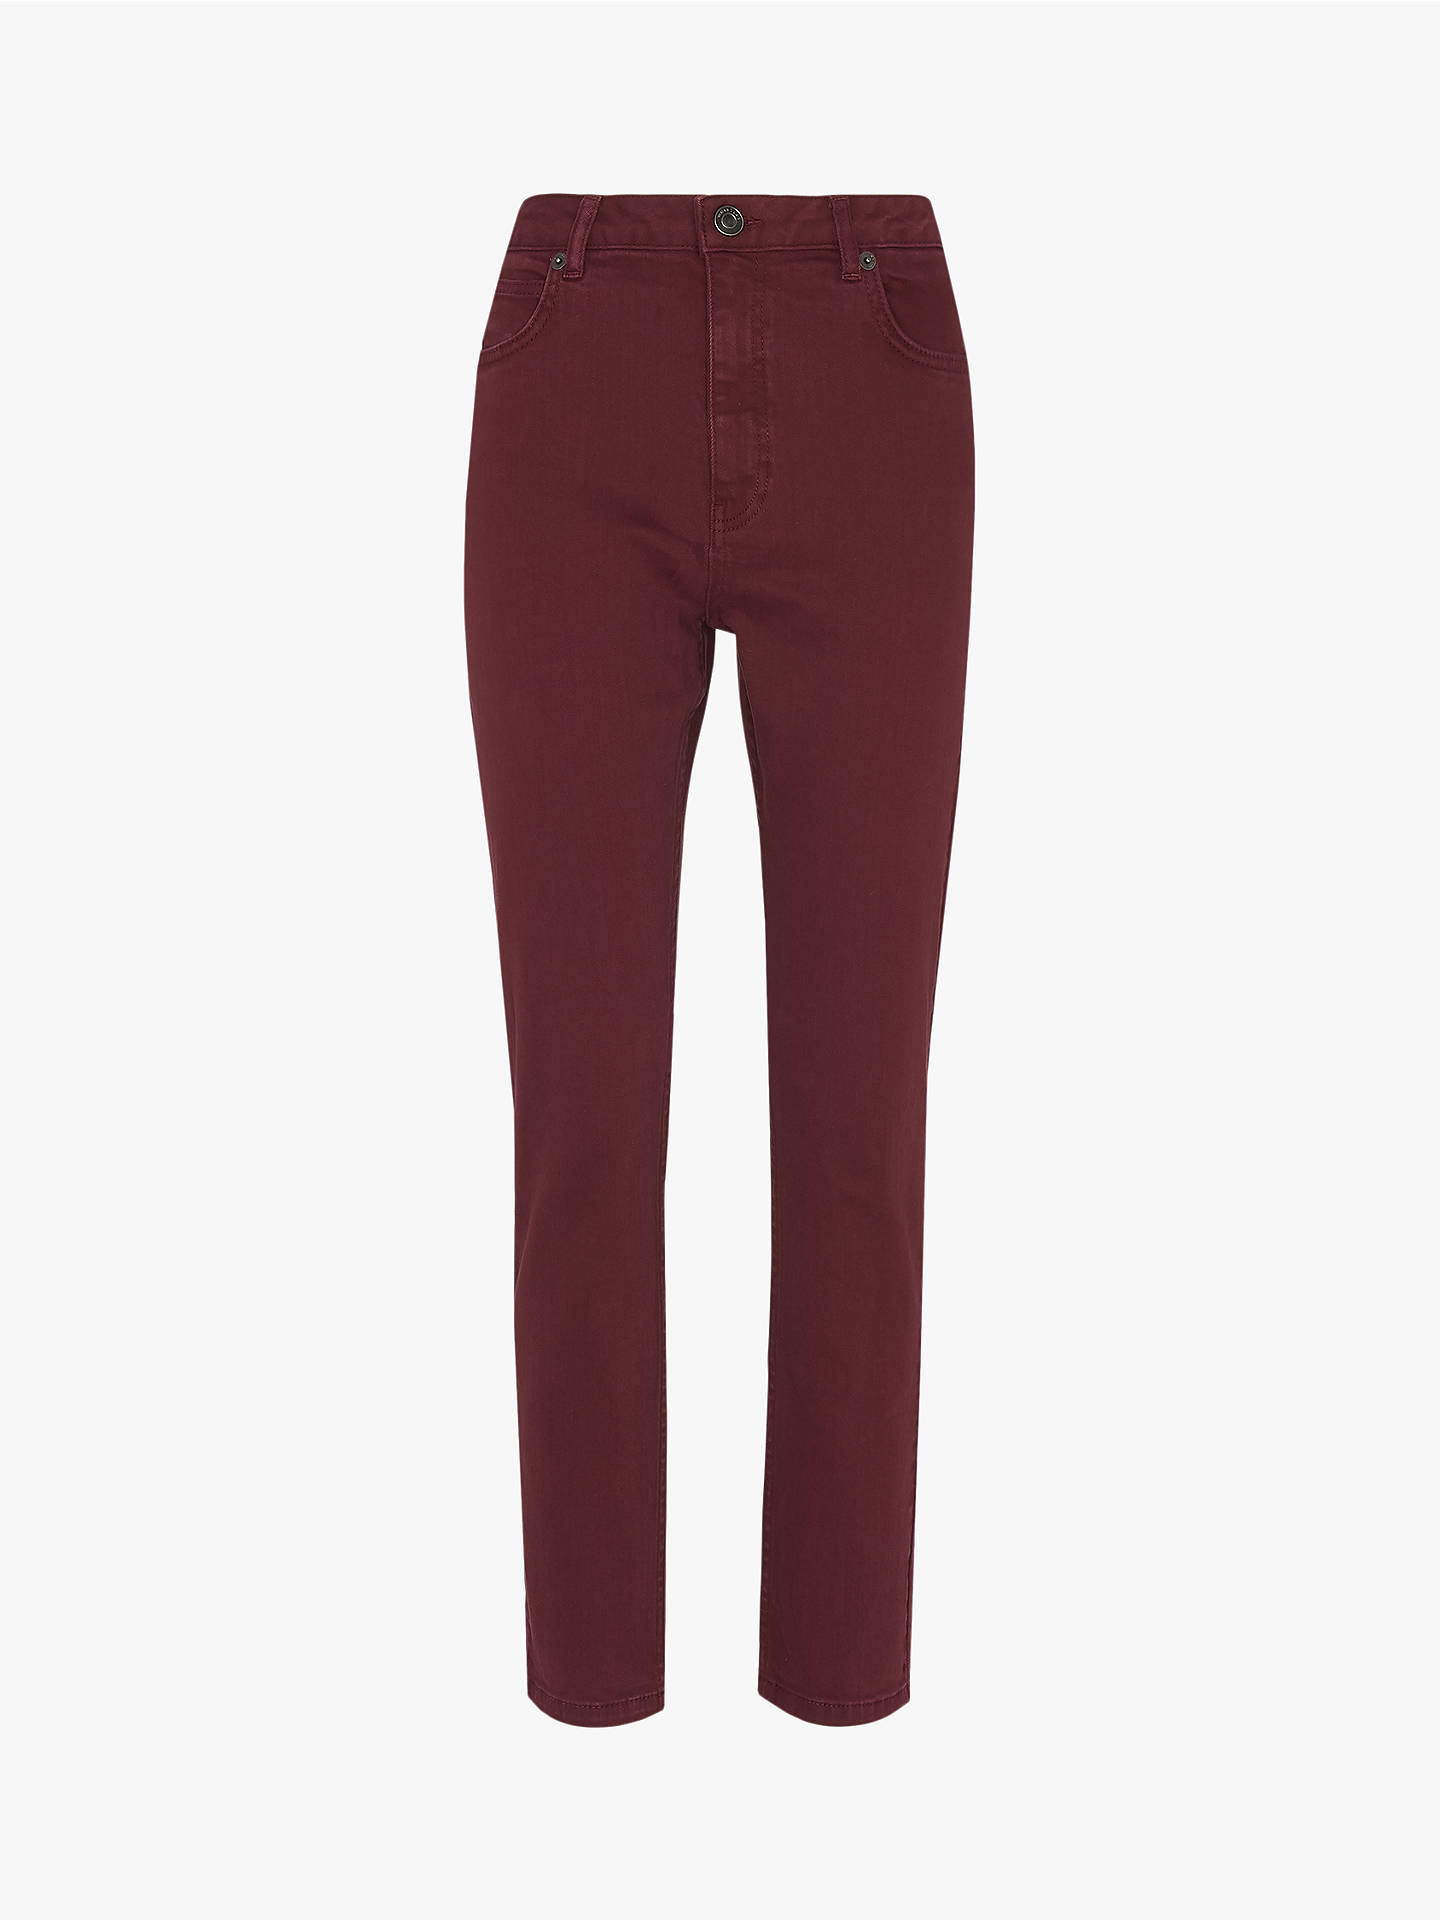 Buy Whistles Skinny Jeans, Burgundy, 26R Online at johnlewis.com